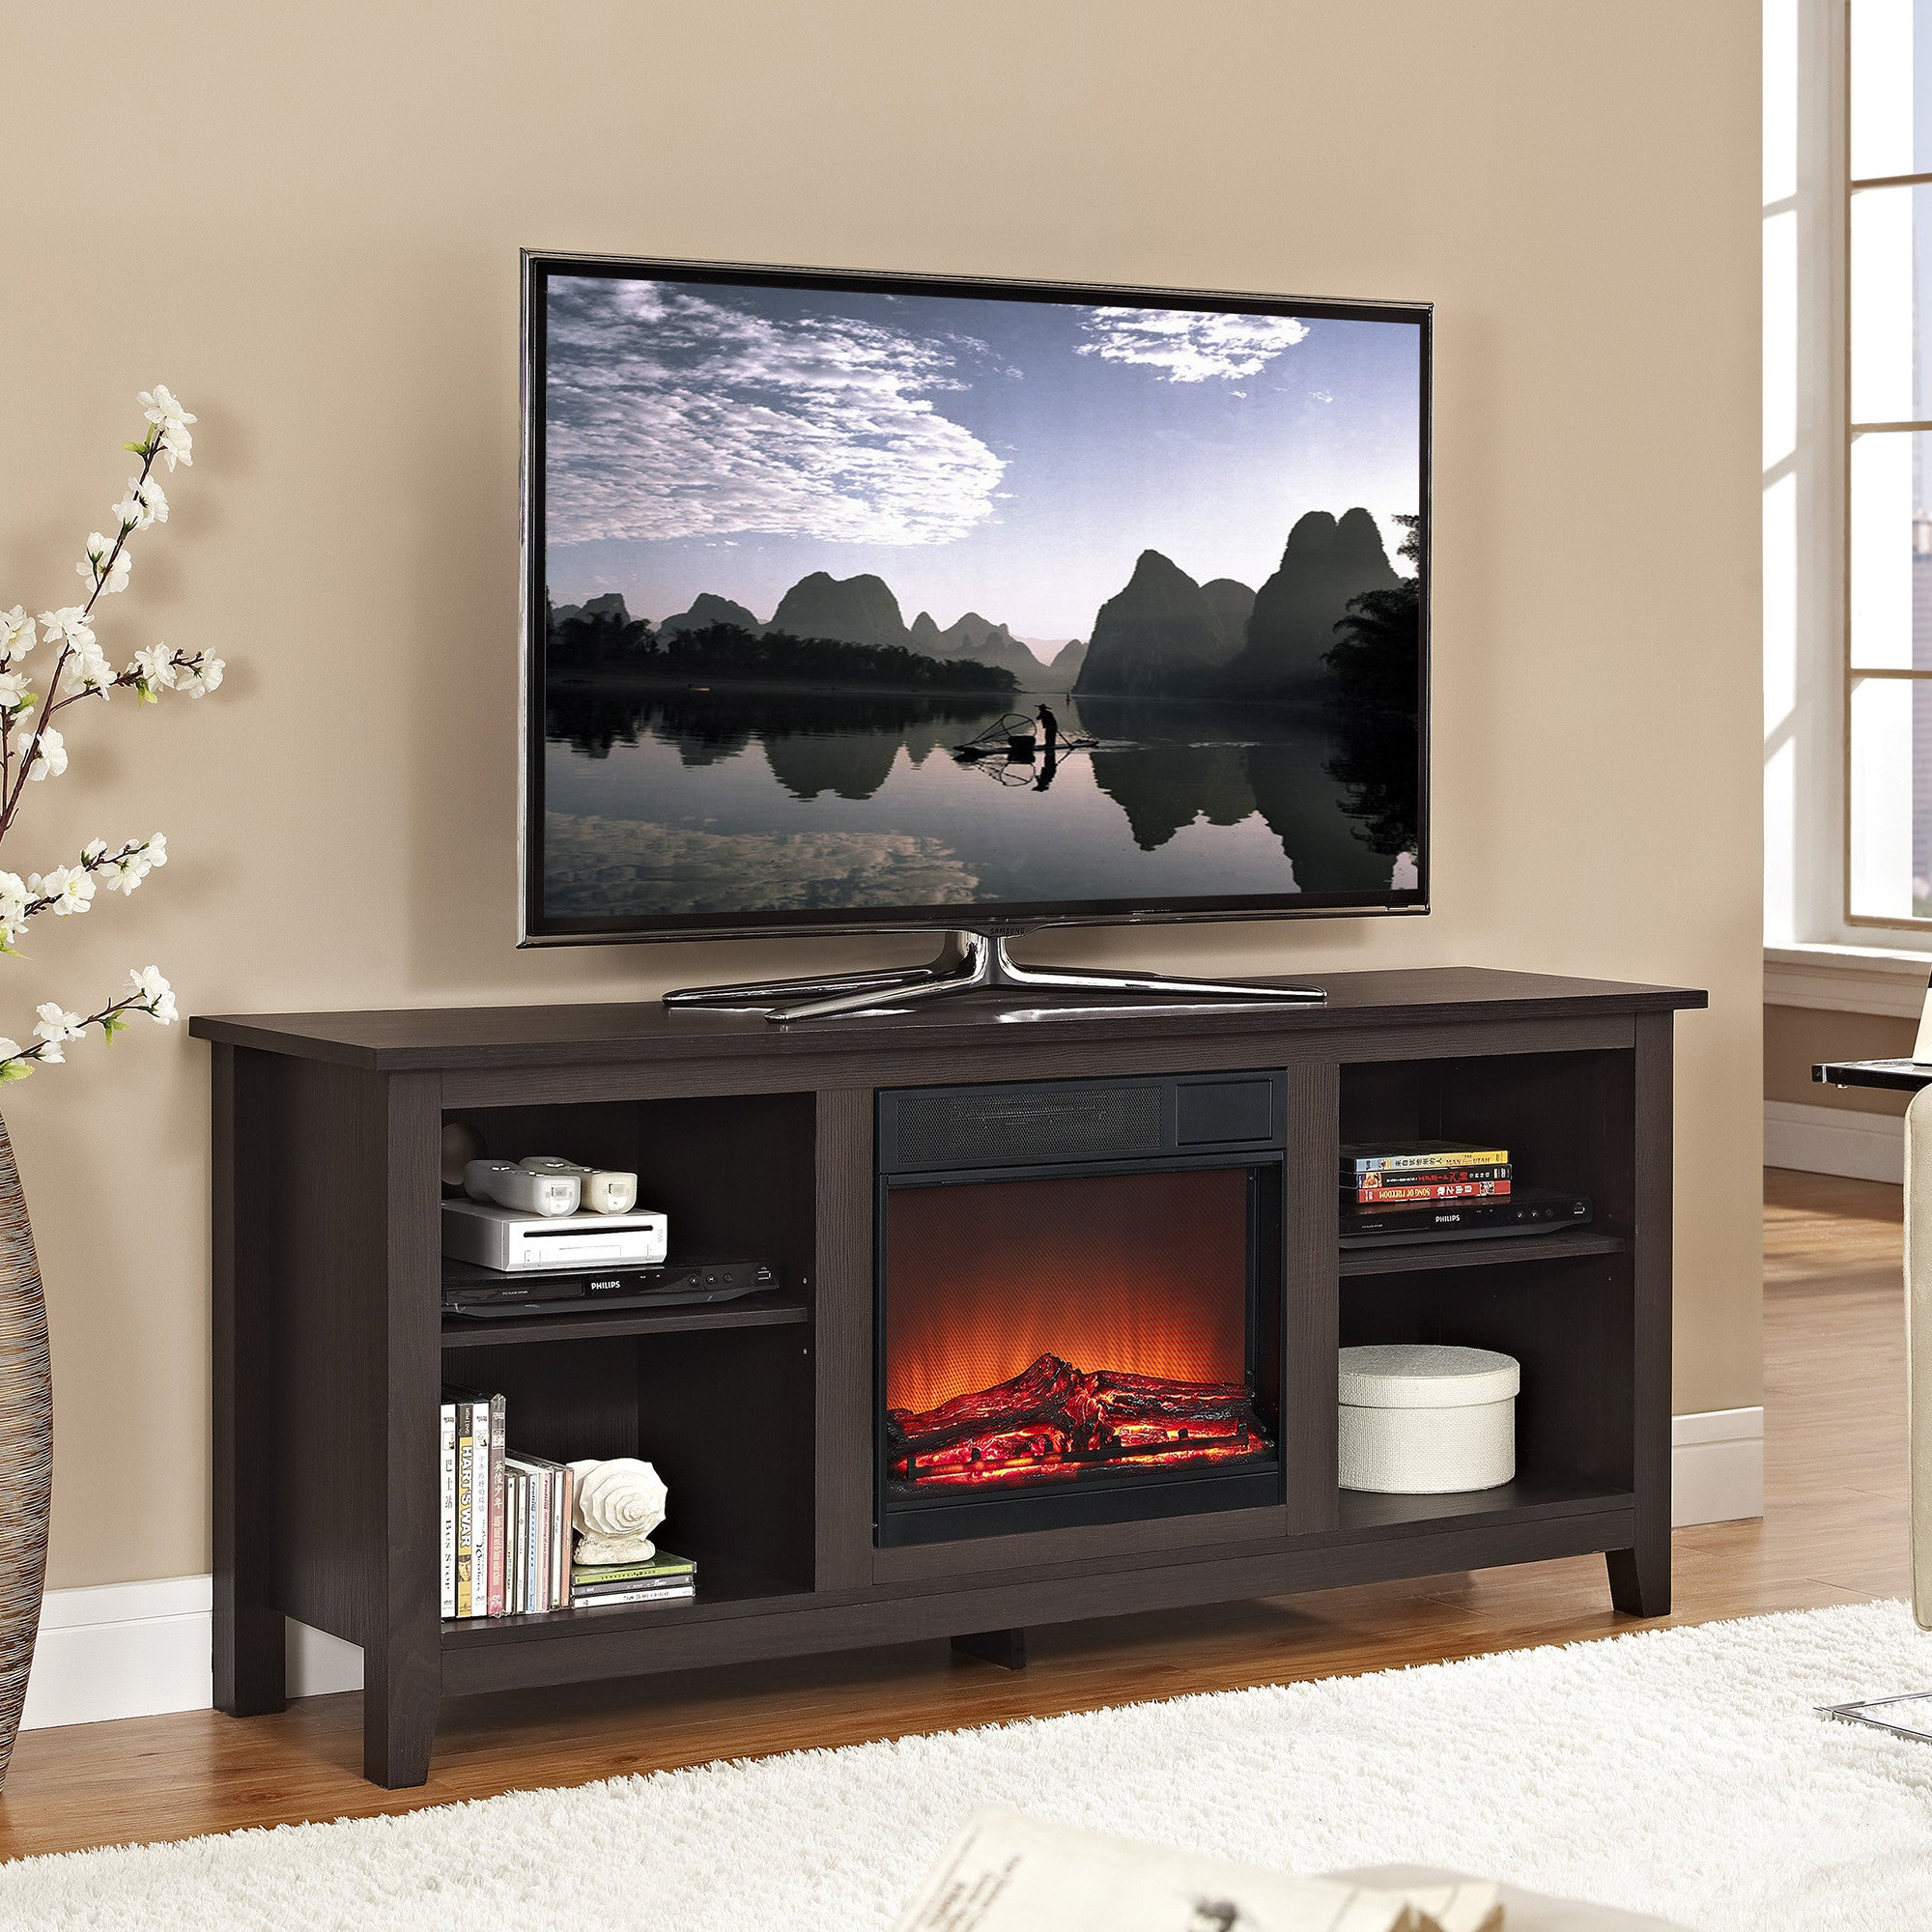 This TV stand is a great idea!  Included in the middle of this stand is an electric fireplace.  No technician